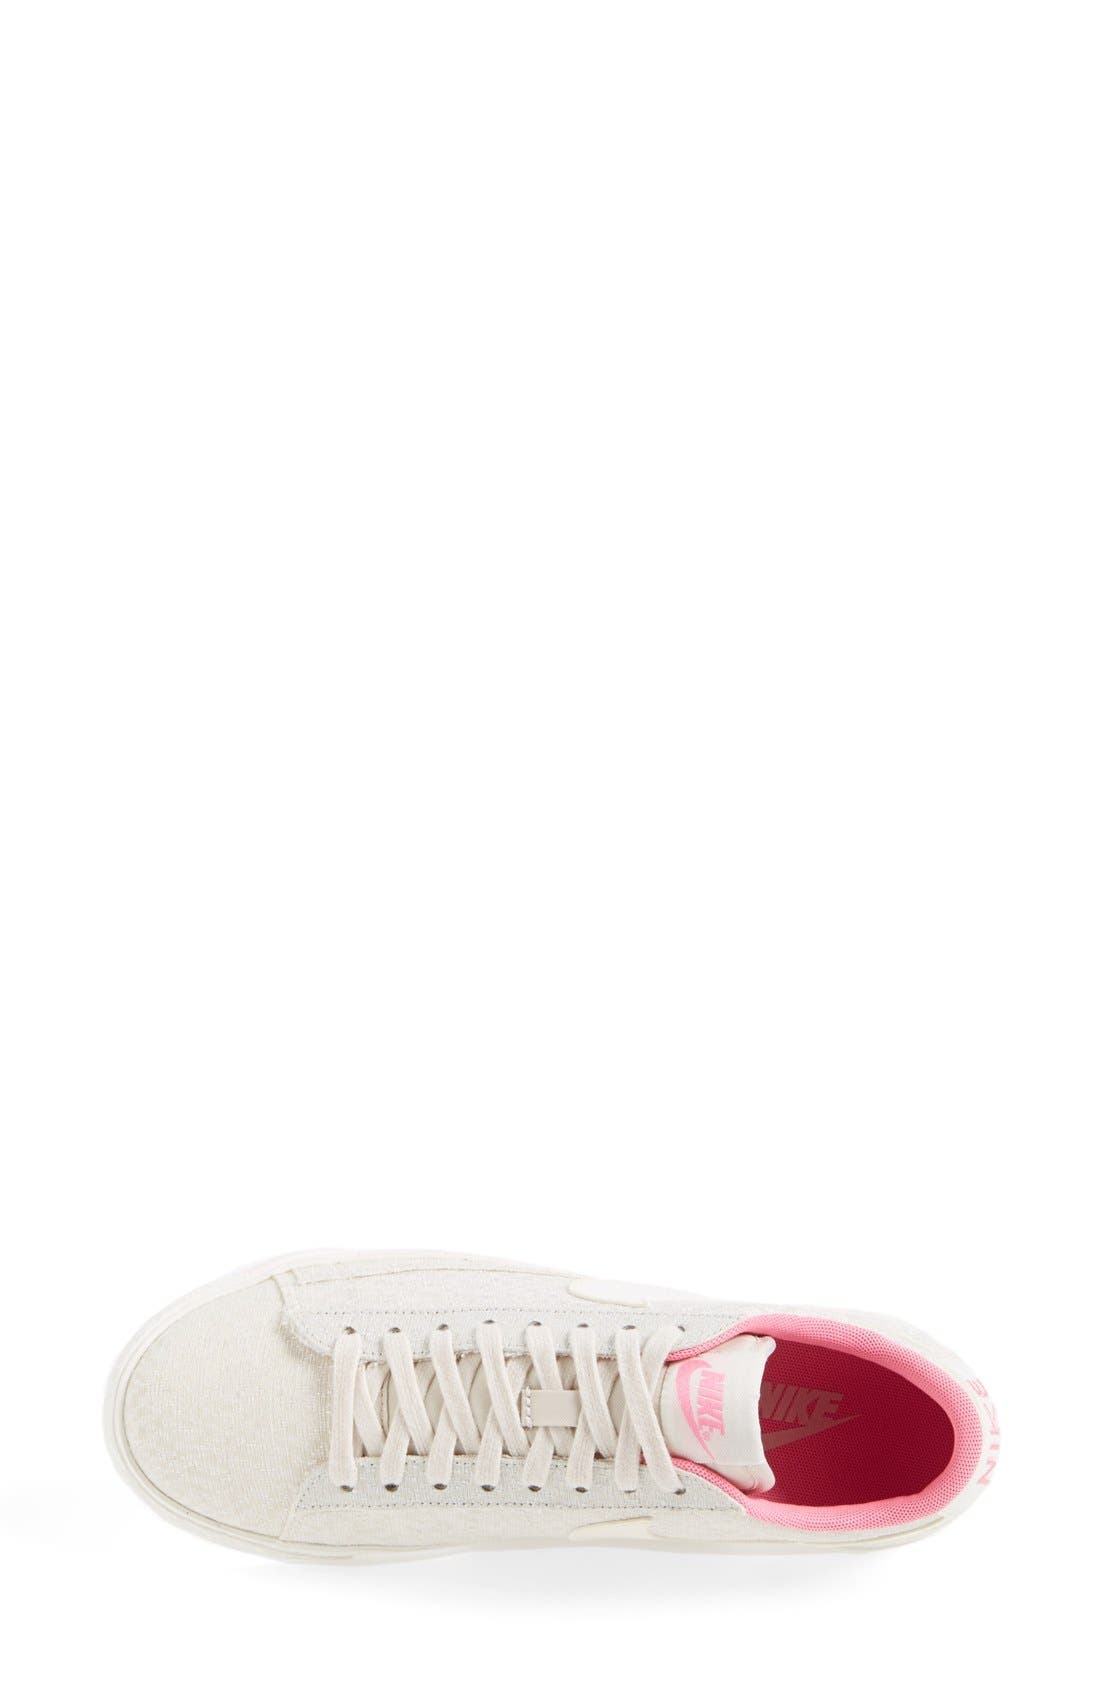 Alternate Image 3  - Nike 'Blazer' Low-Top Sneaker (Women)